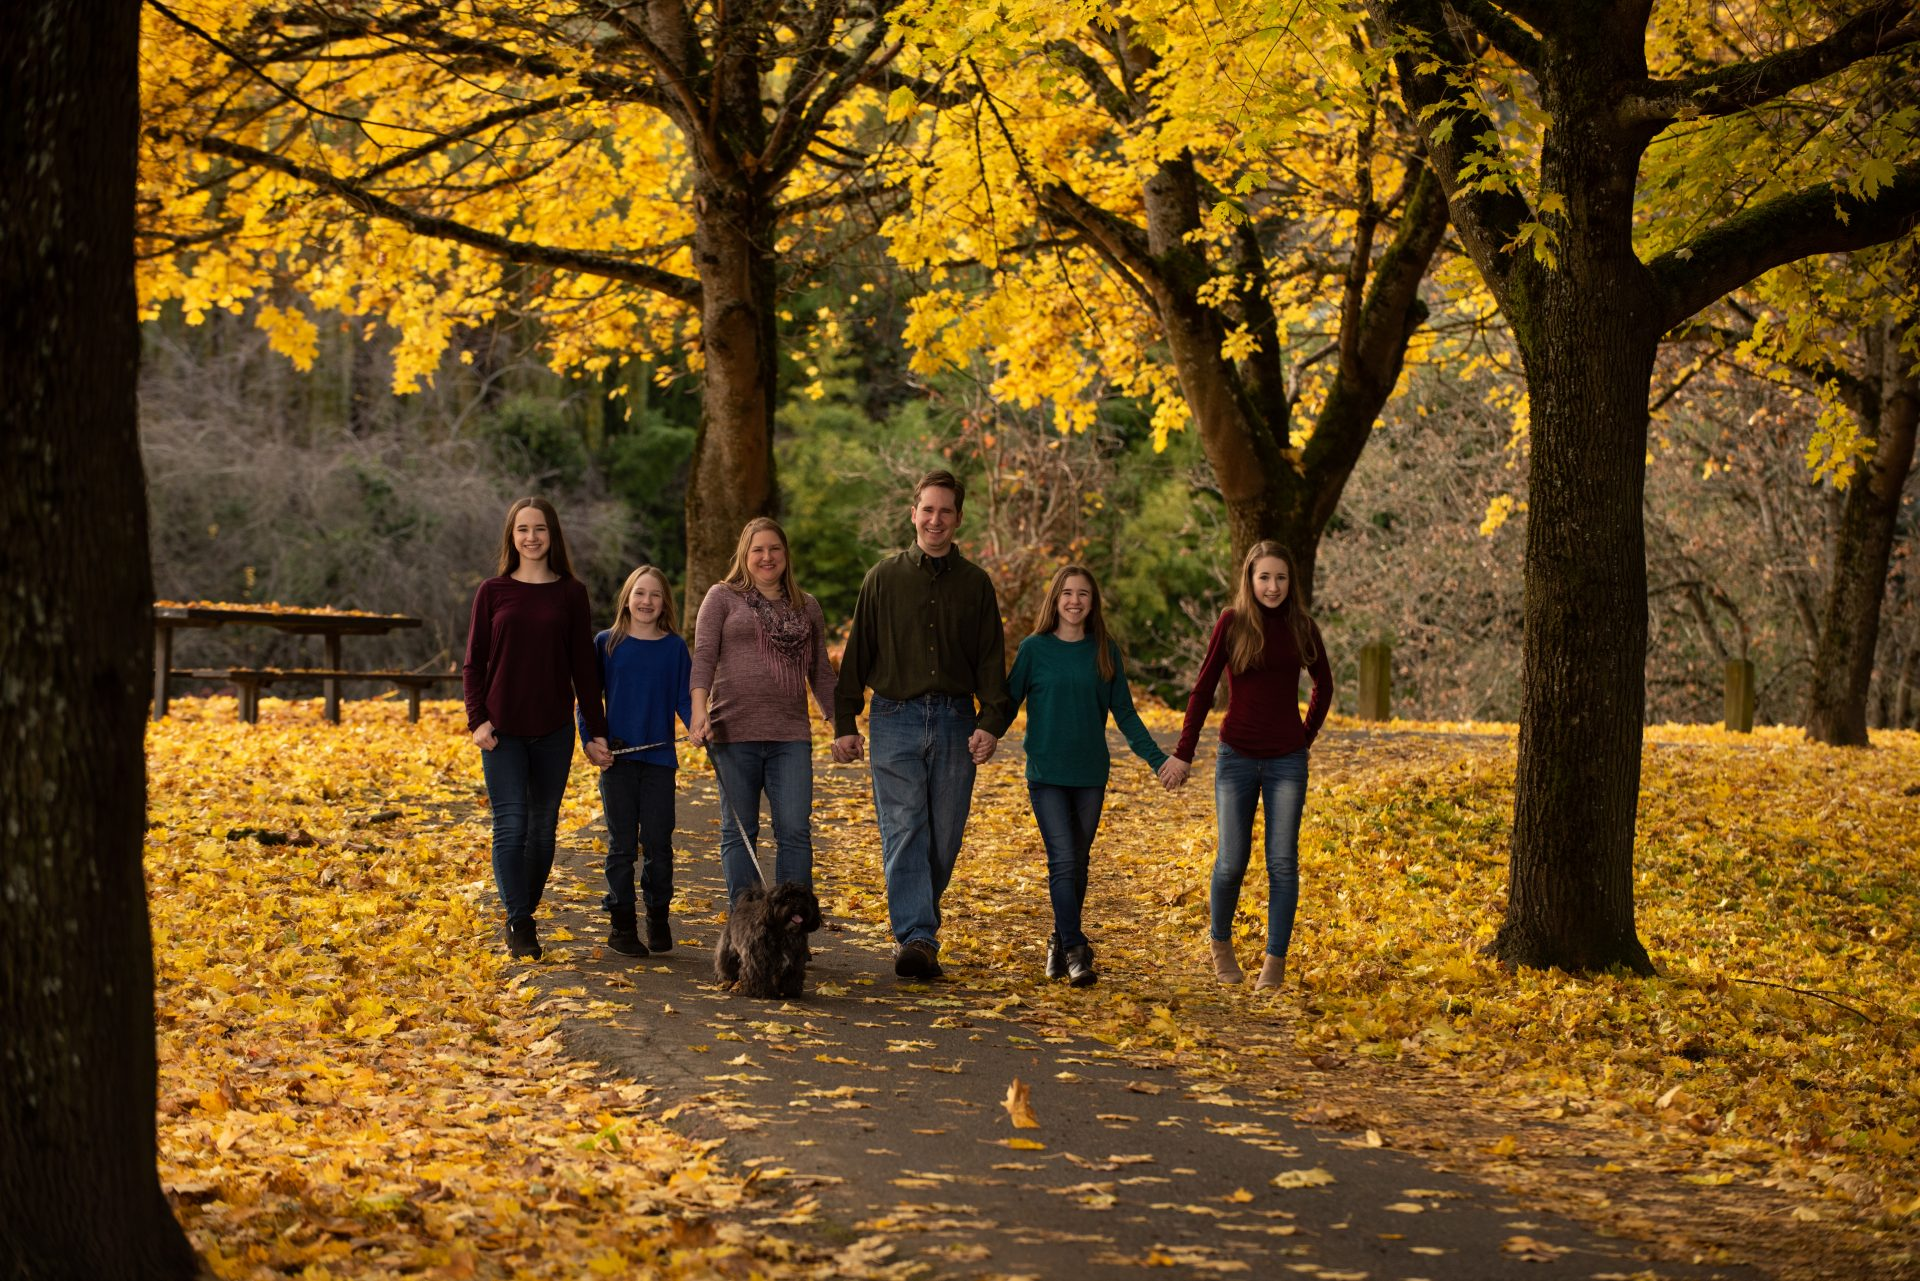 fall family portrait ideas in the leaves